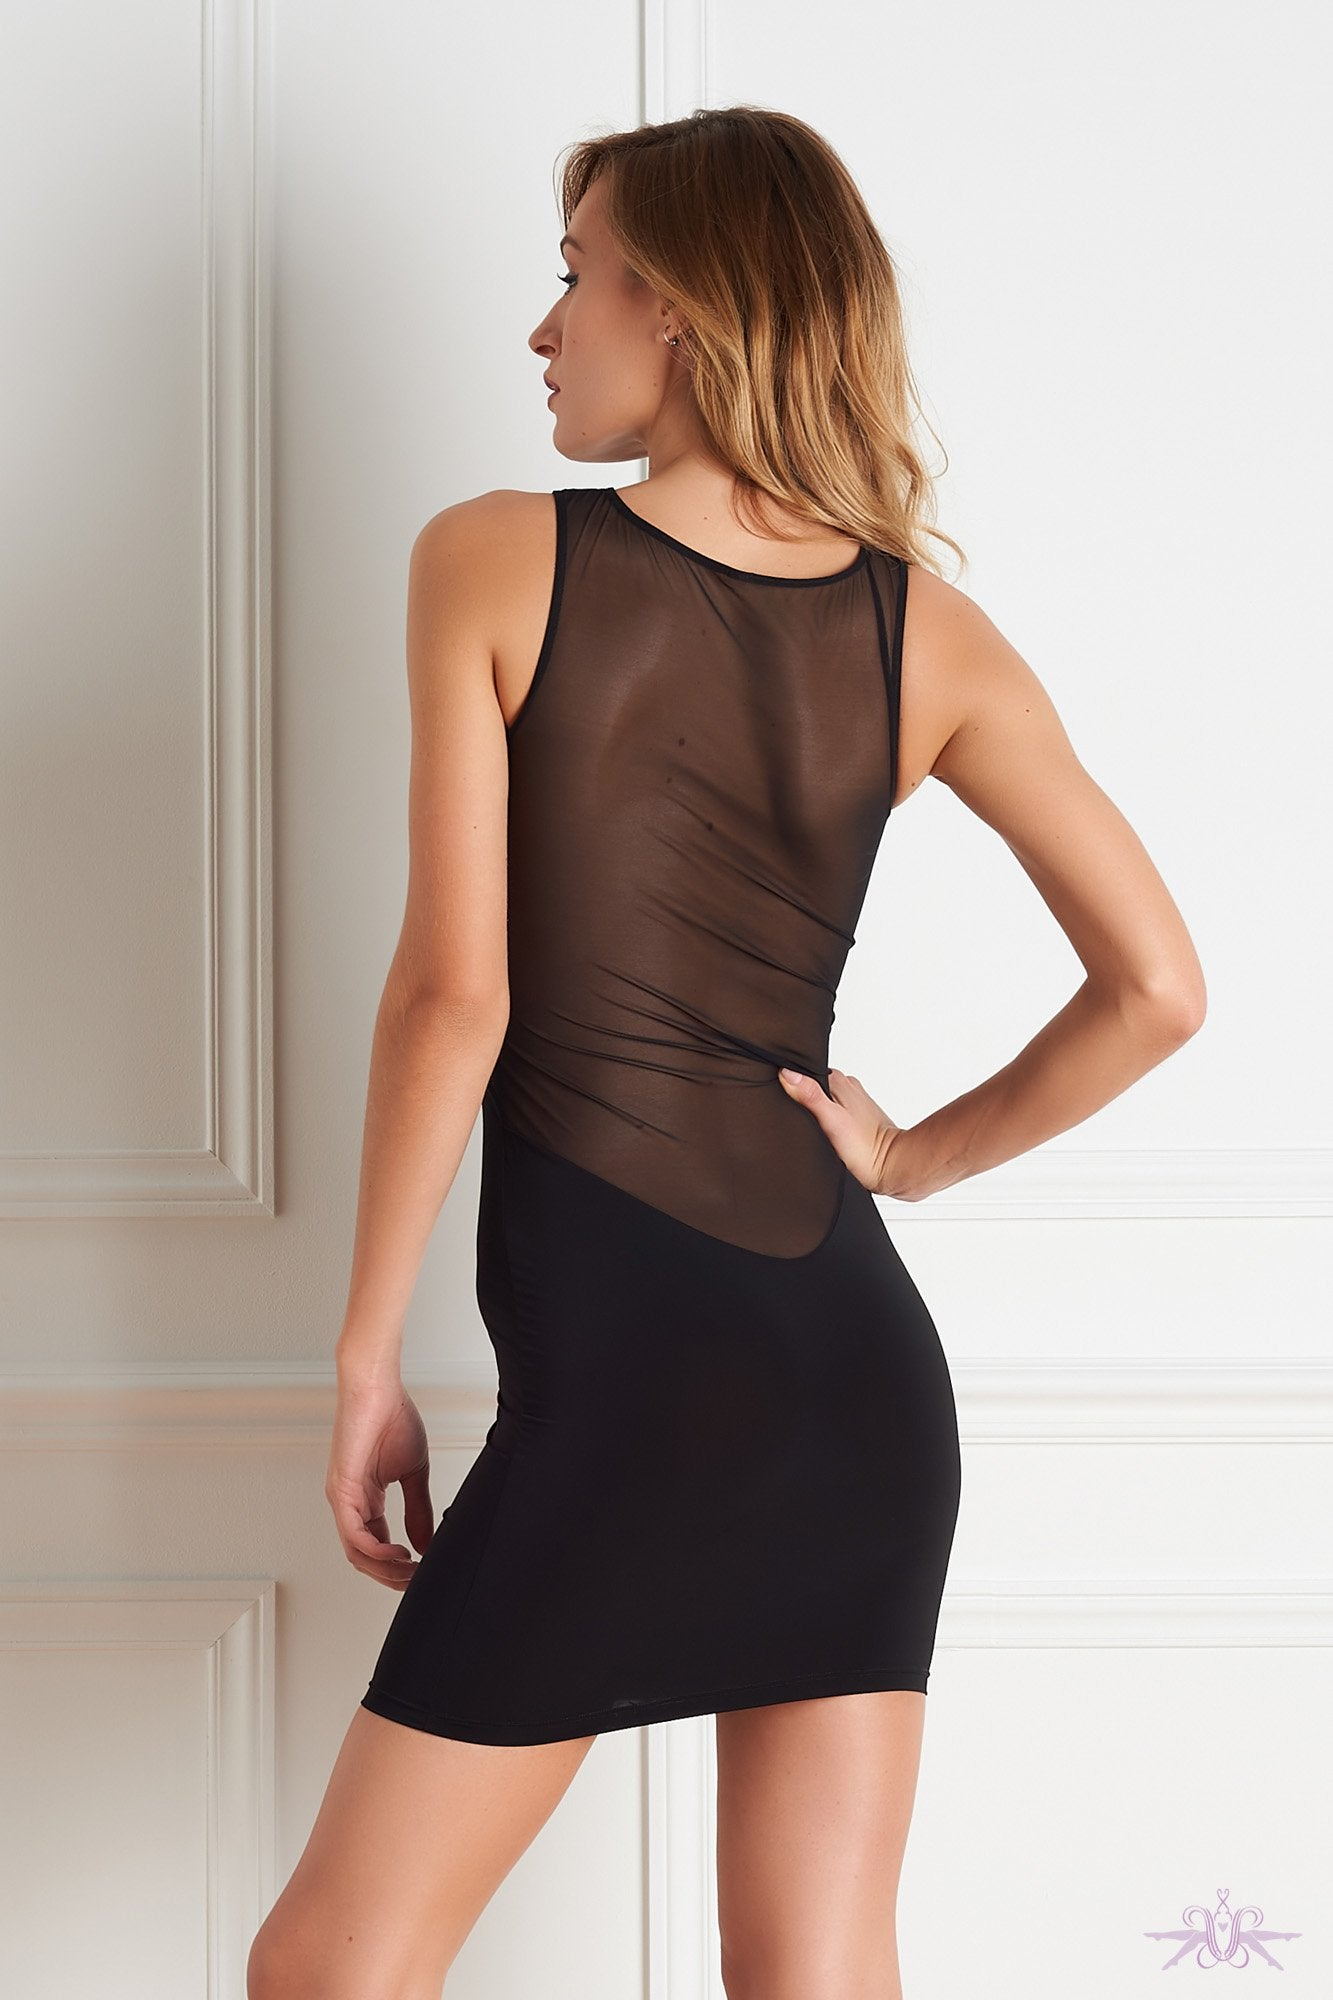 Maison Close Pure Tentation Dress - The Hosiery Box